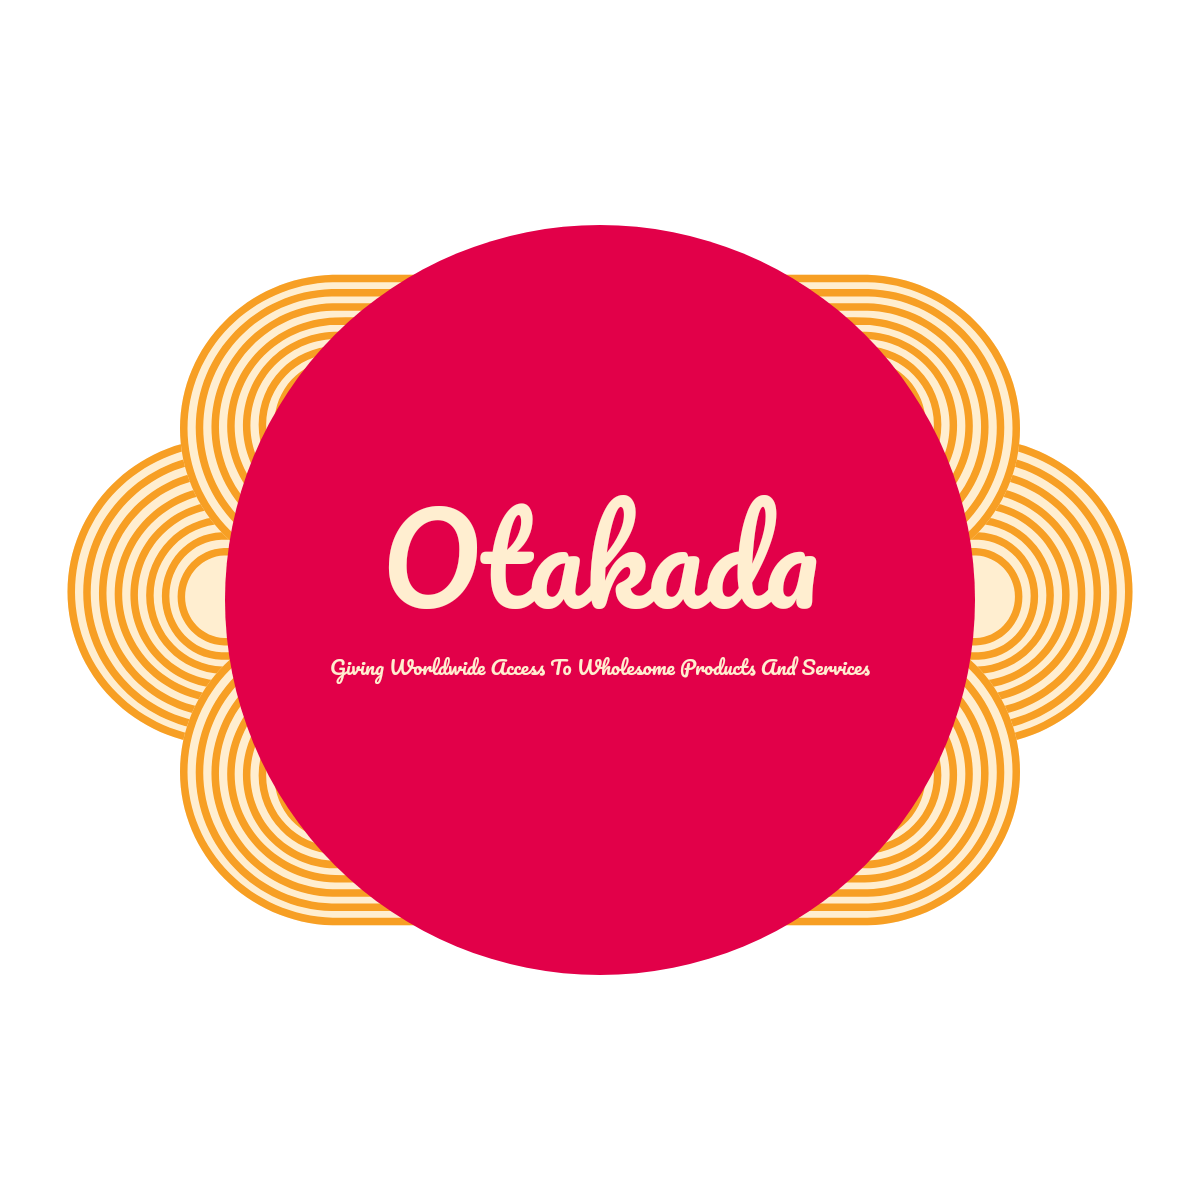 Otakada.org Shop – The Believers Shopping World For Wholesome Products and Services